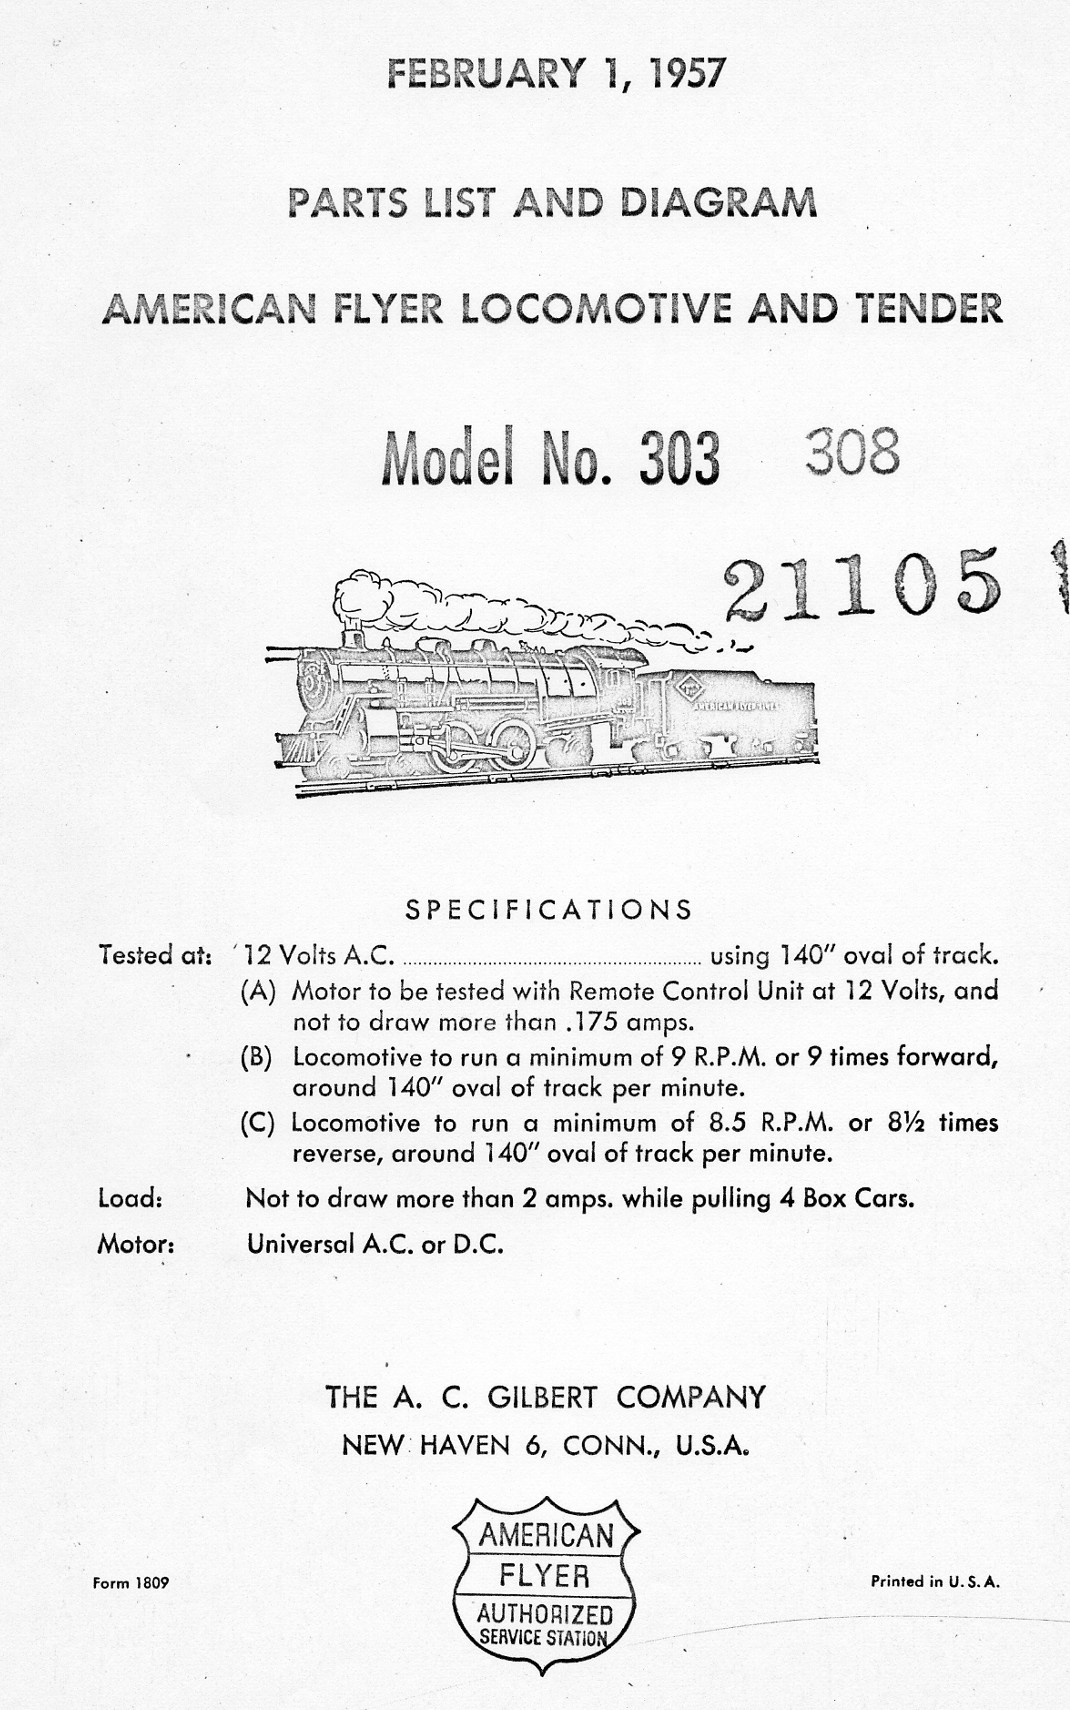 American Flyer Transformer 308 Parts List and Diagram - Page 1